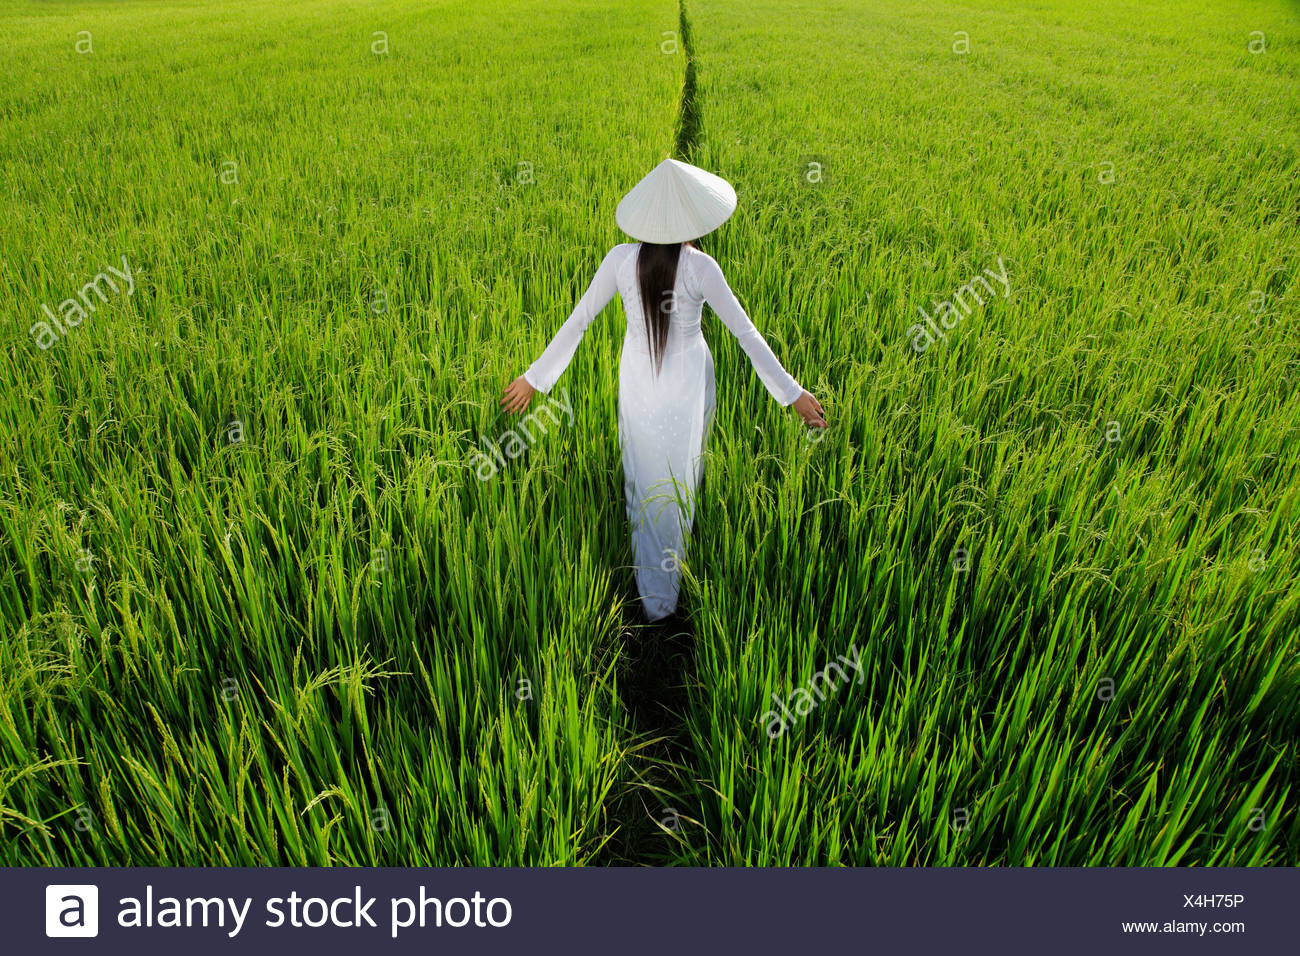 ede097073 Rear view of woman wearing traditional Vietnamese outfit walking through a rice  paddy - Stock Image